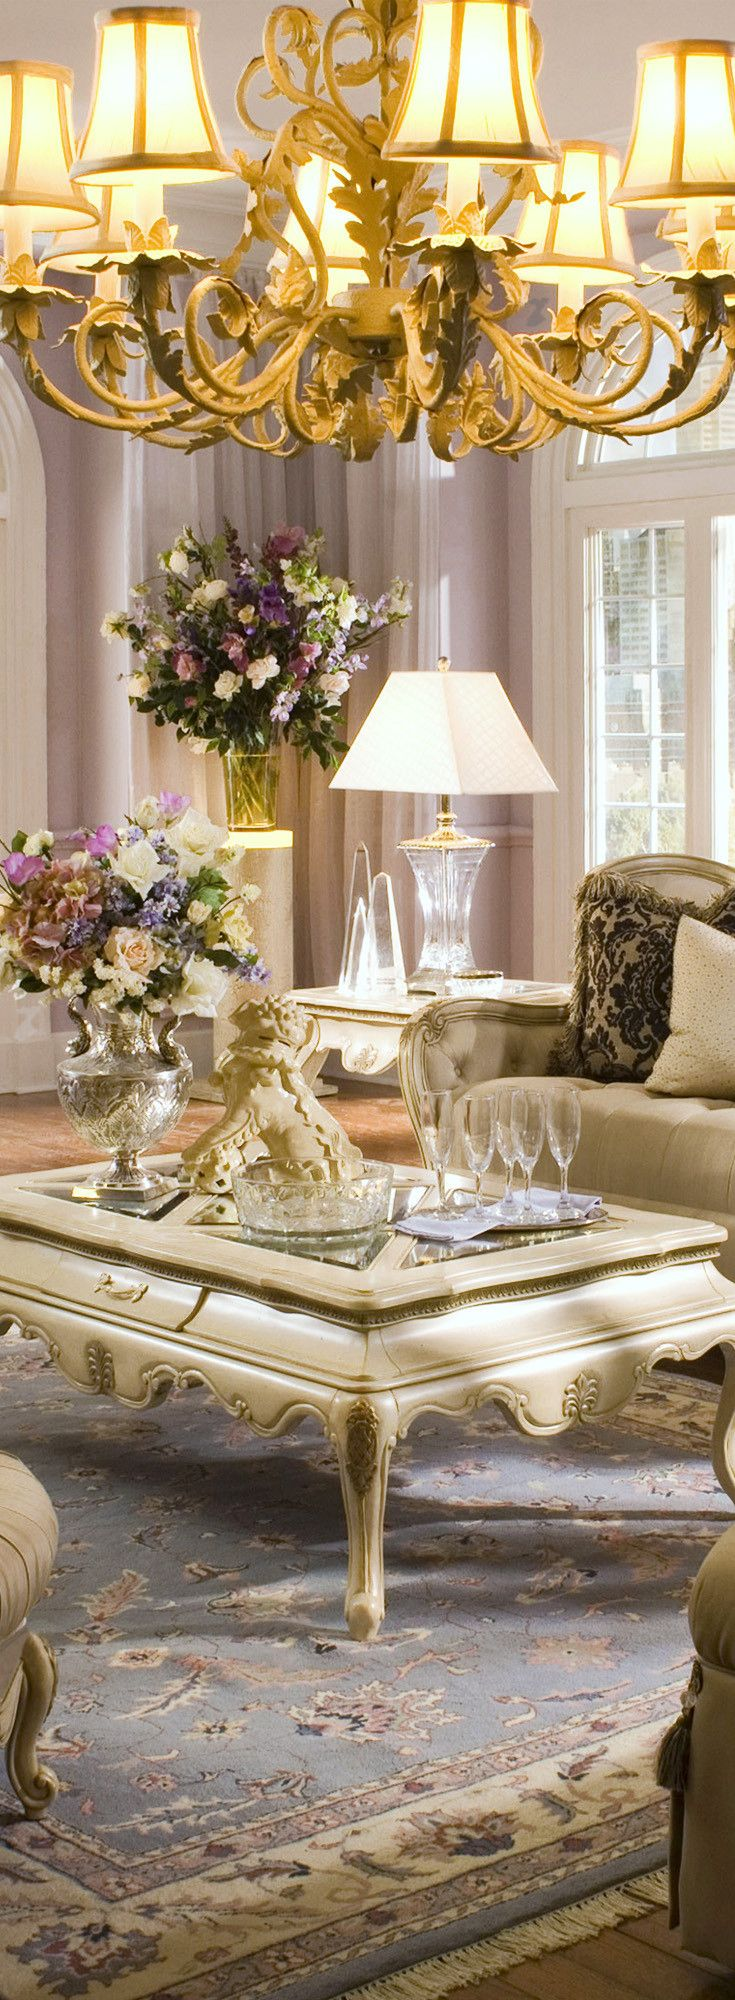 Luxurious Living Room Designs 17 Best Ideas About Elegant Living Room On Pinterest Interior